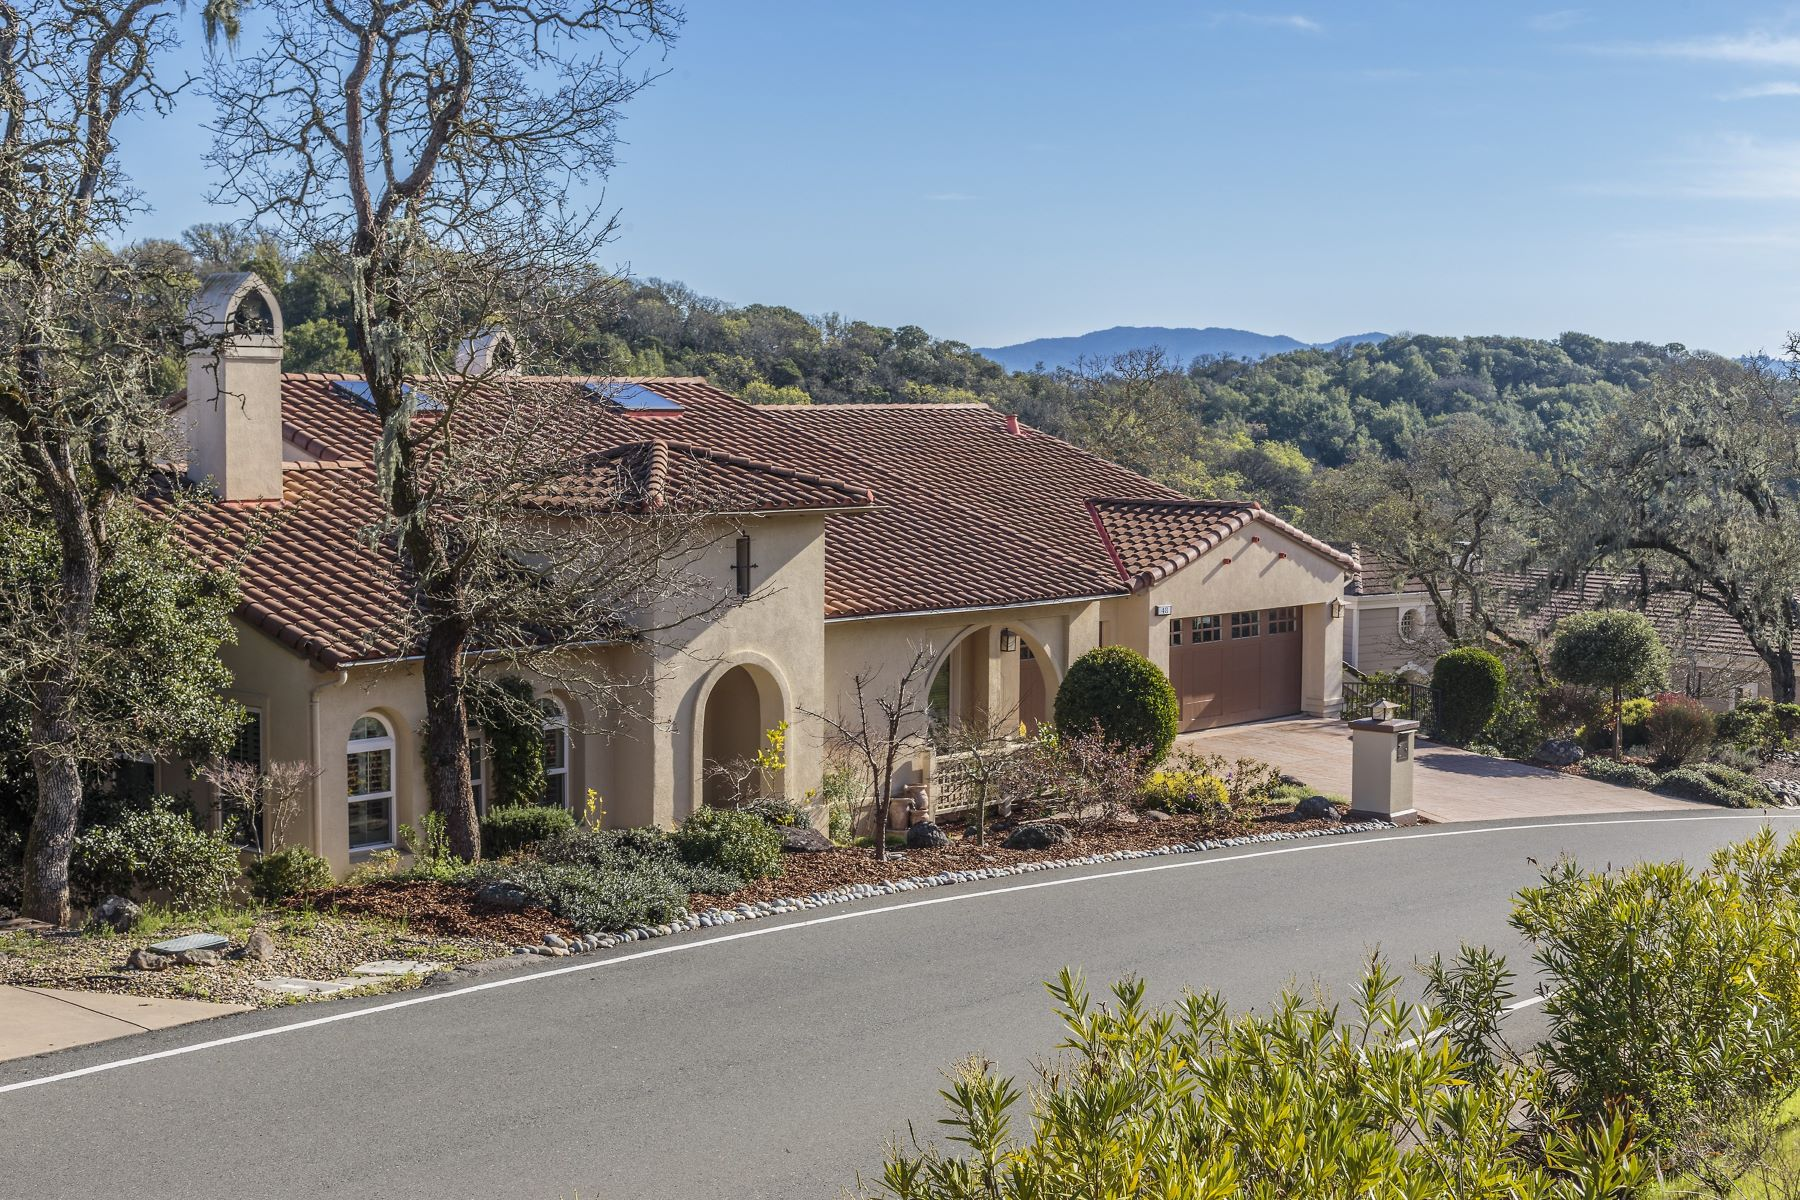 Single Family Home for Sale at Exquisite Tuscan Style Home at Stonetree Golf Club 48 Stonetree Lane Novato, California 94945 United States